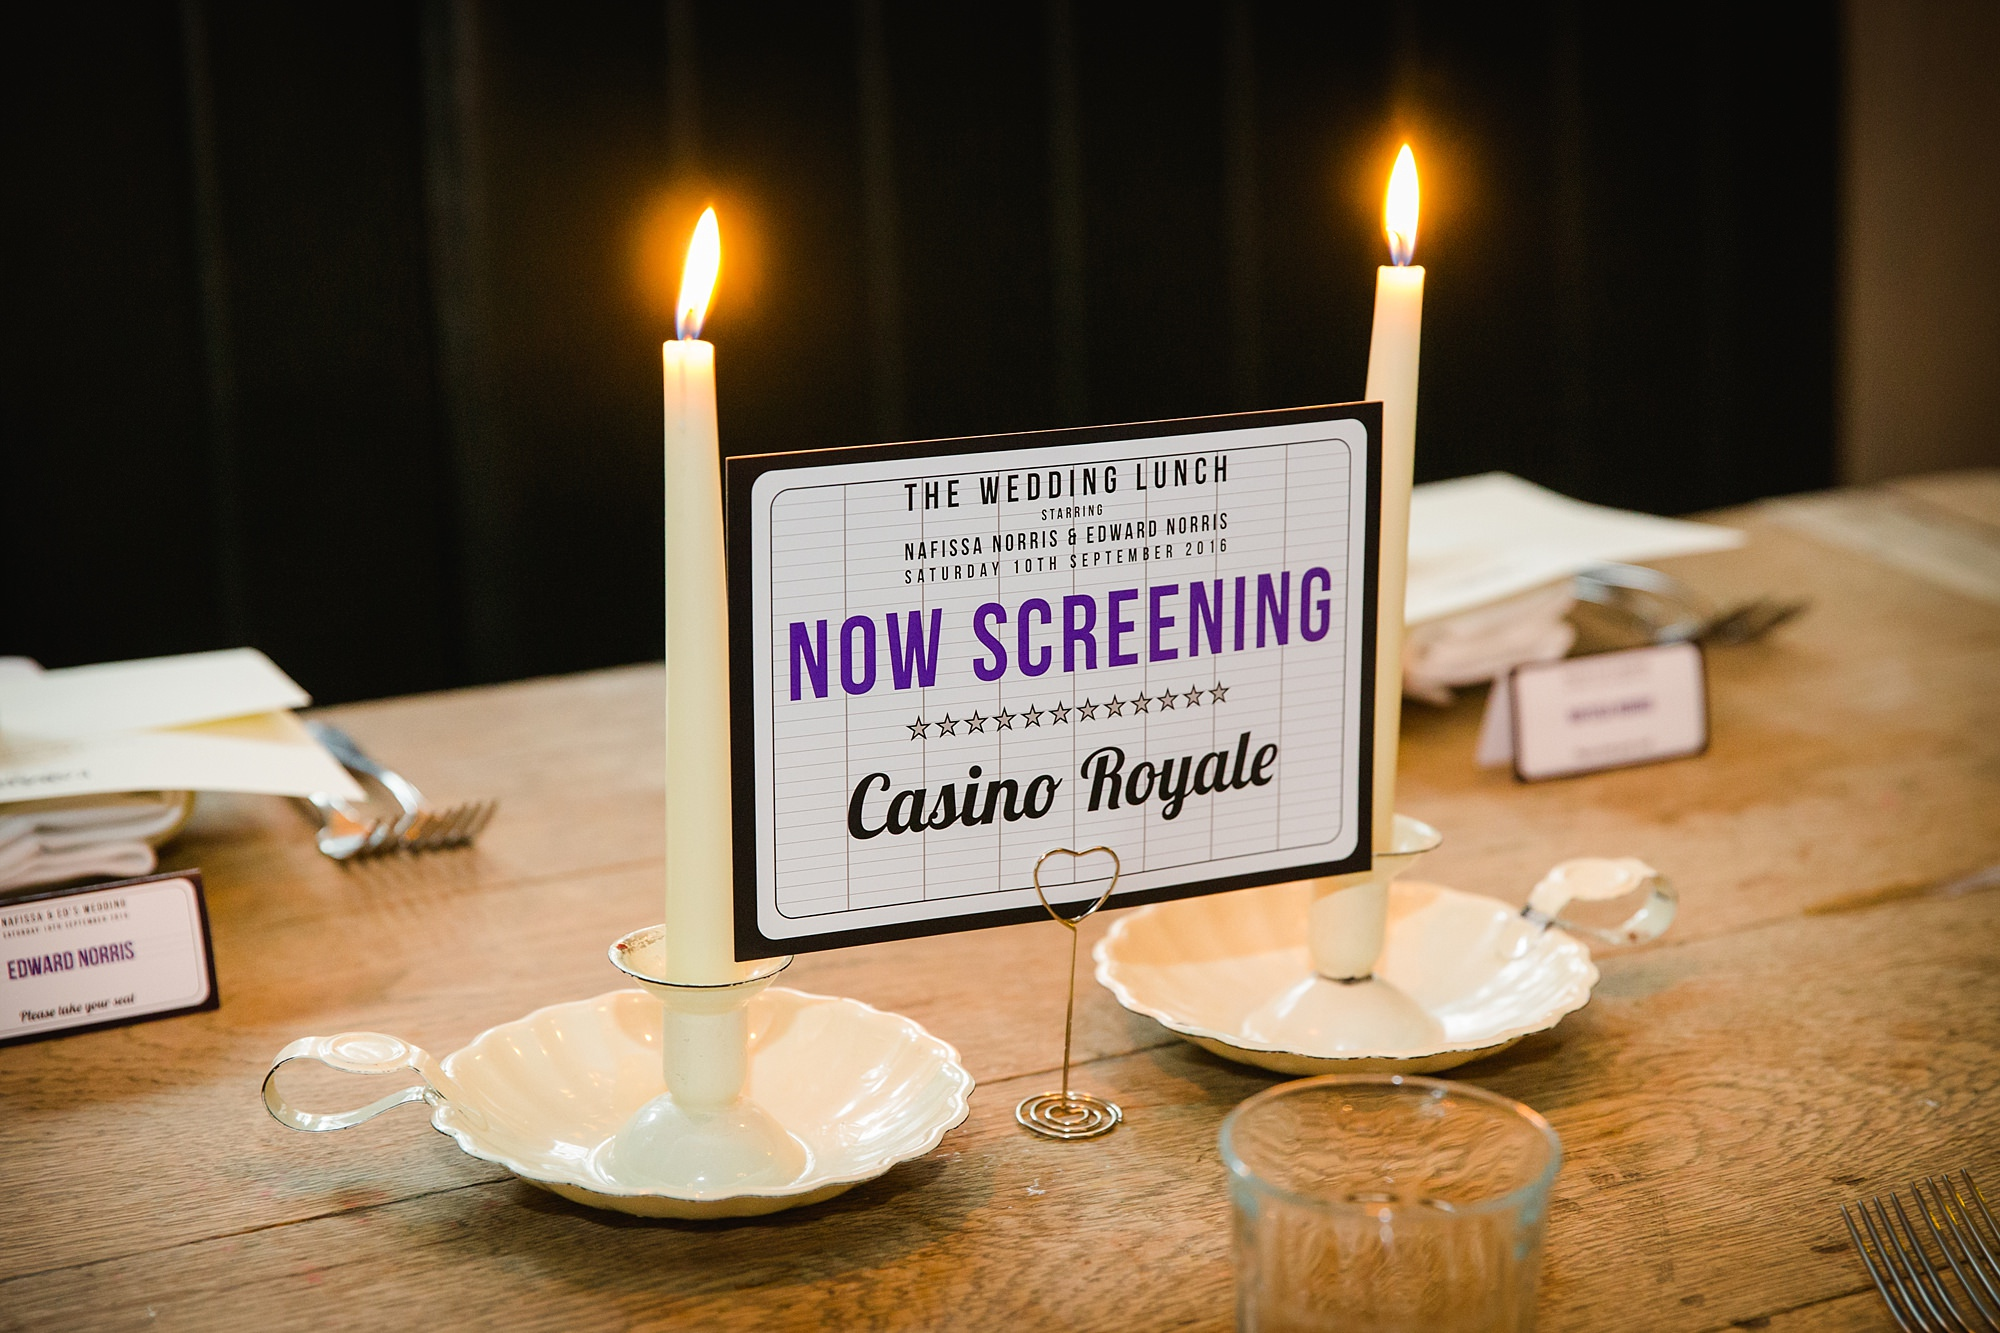 Paradise by way of Kensal Green wedding james bond table name